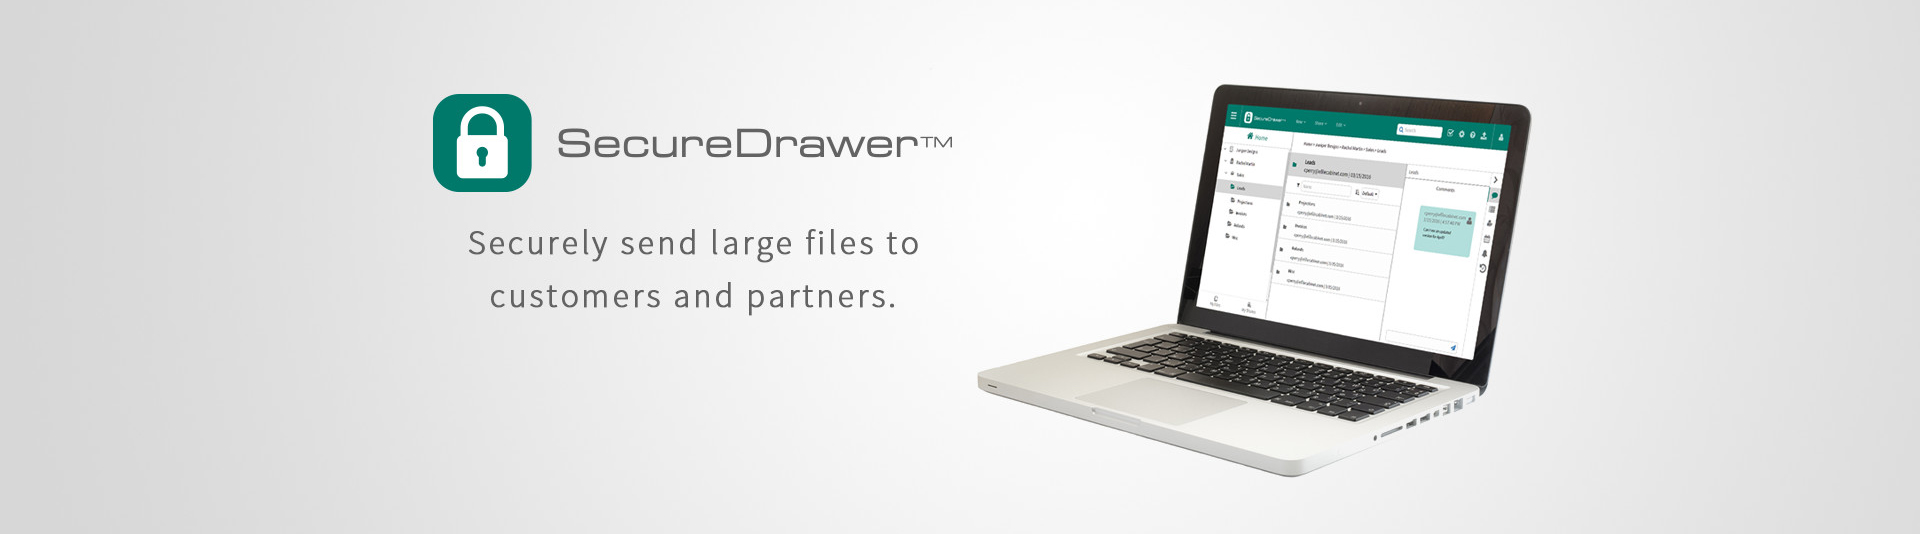 document management software industries and securedrawer